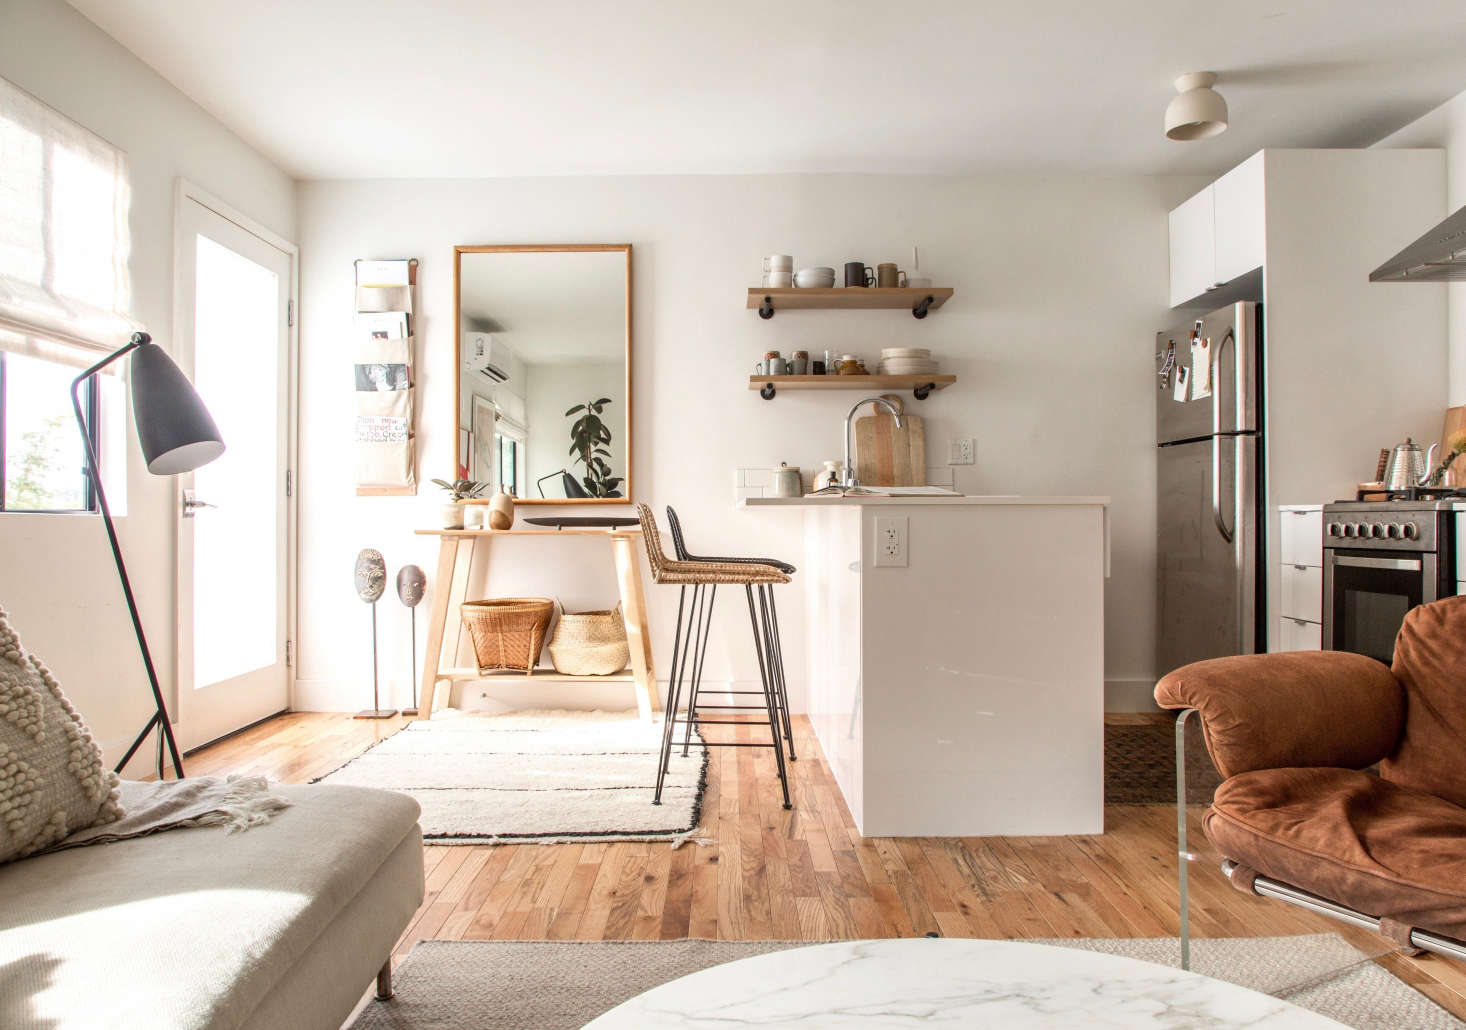 A single-door fridge fits into a built-in niche (with room to spare) inThe LA Rental, Upgraded: Designer Paige Geffen's 500-Square-Foot Challenge.